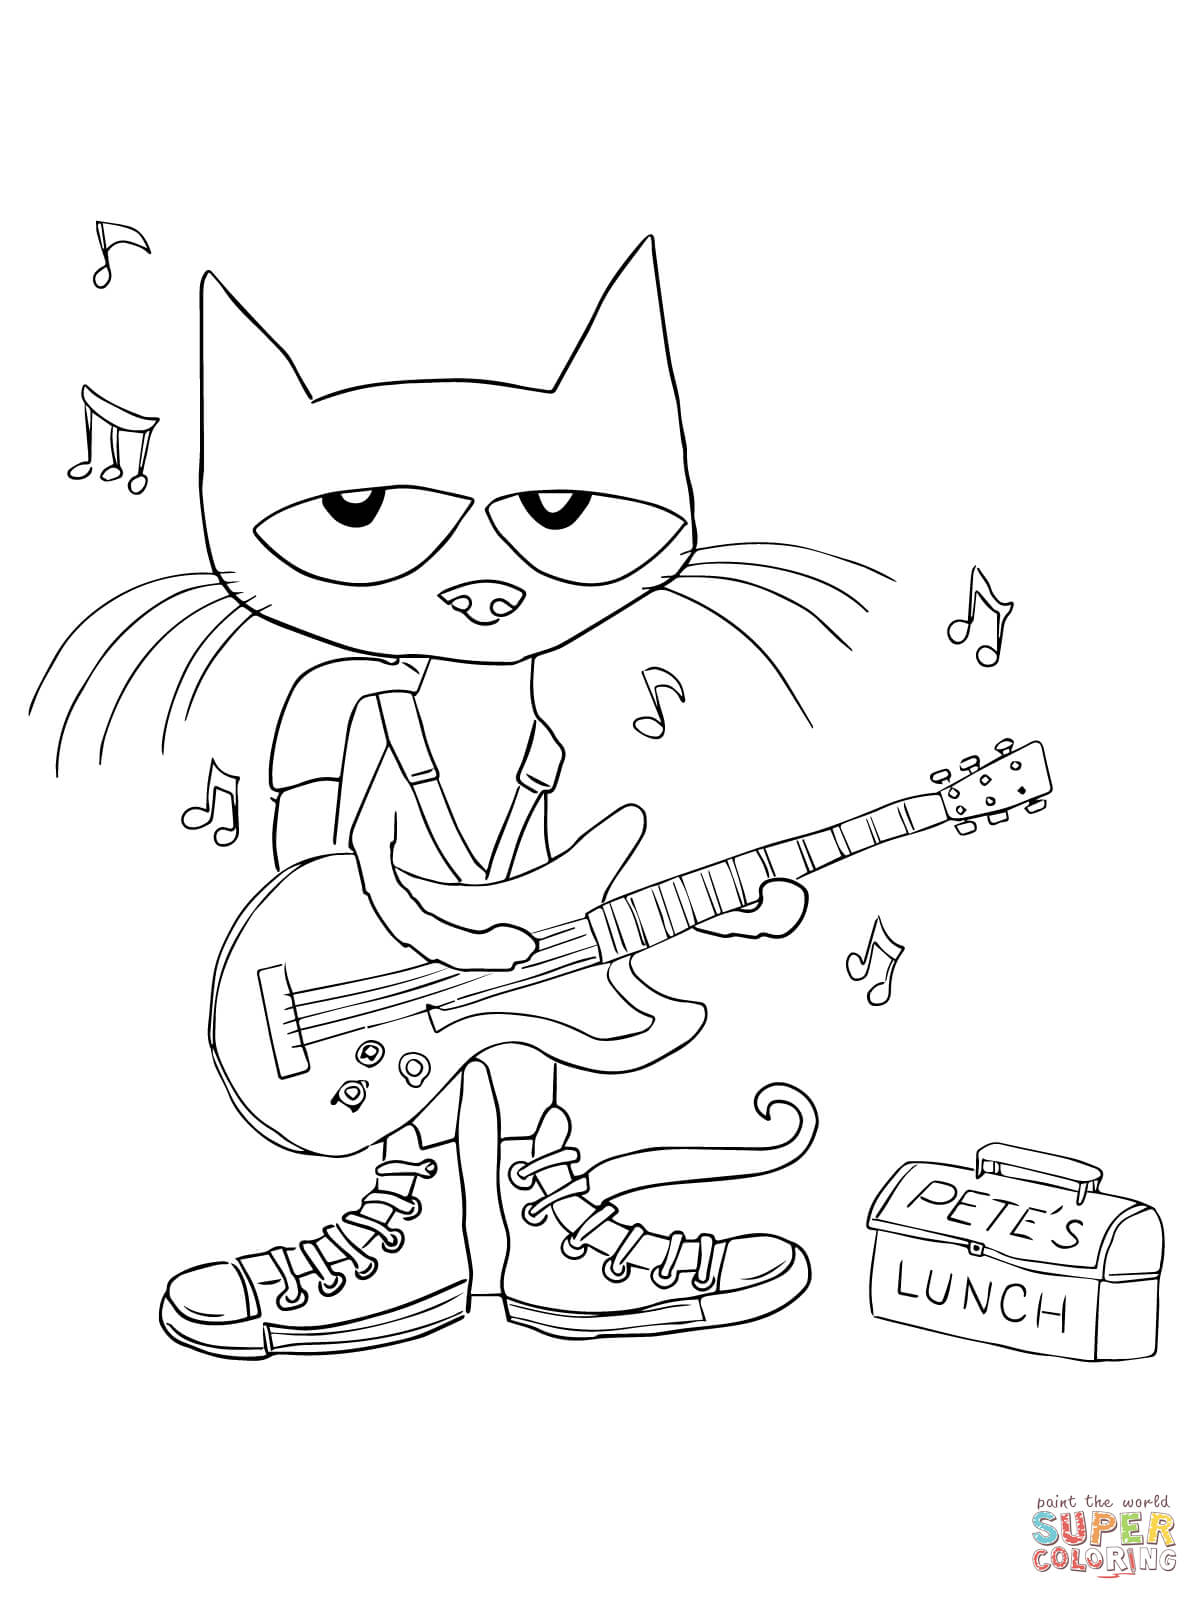 Cute Cat Valentine's Day Coloring Page - Free Printable | No, YOU ... | 1600x1200